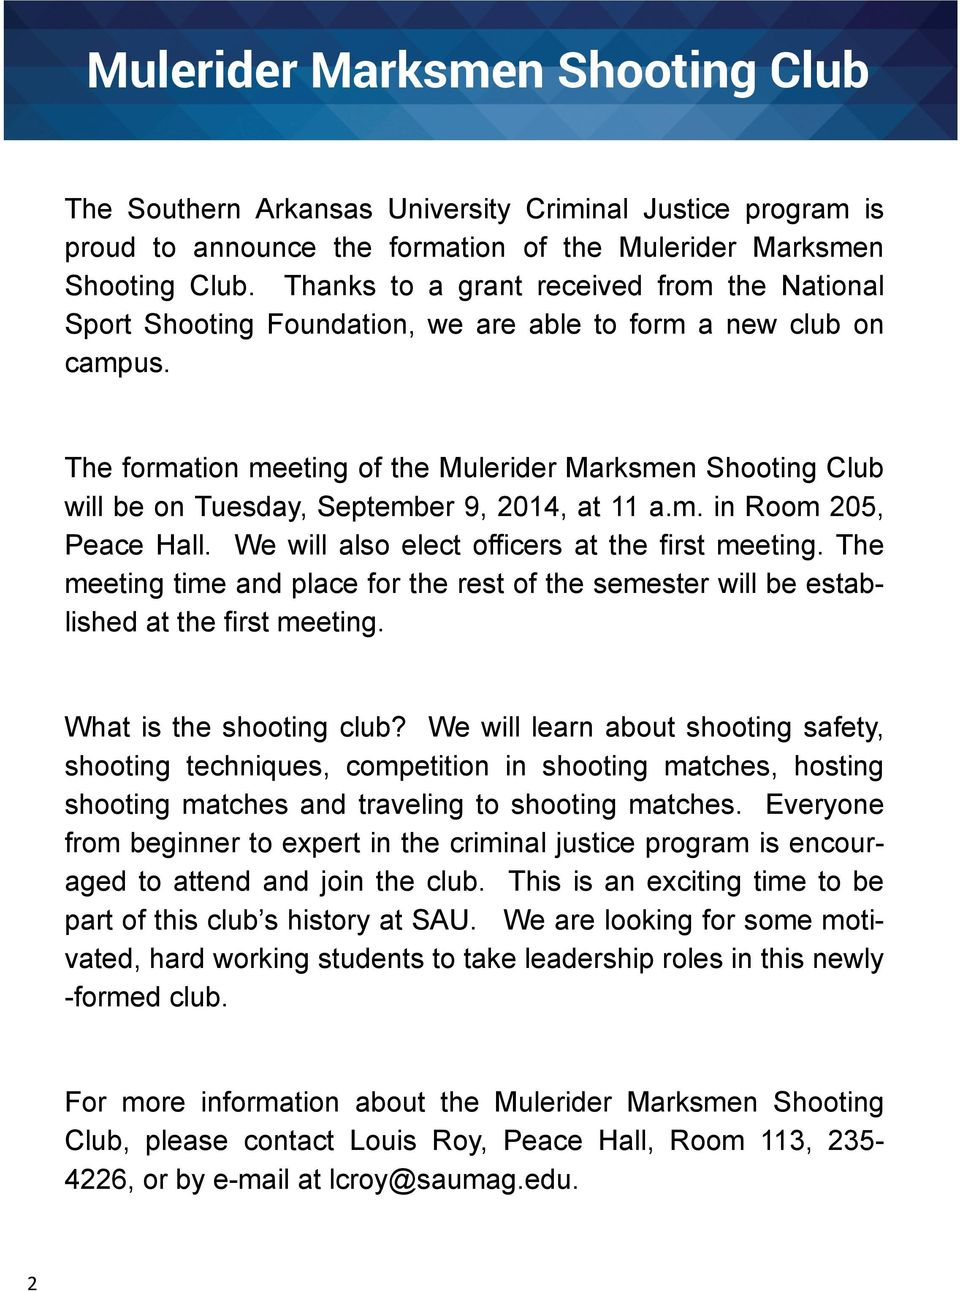 The formation meeting of the Mulerider Marksmen Shooting Club will be on Tuesday, September 9, 2014, at 11 a.m. in Room 205, Peace Hall. We will also elect officers at the first meeting.